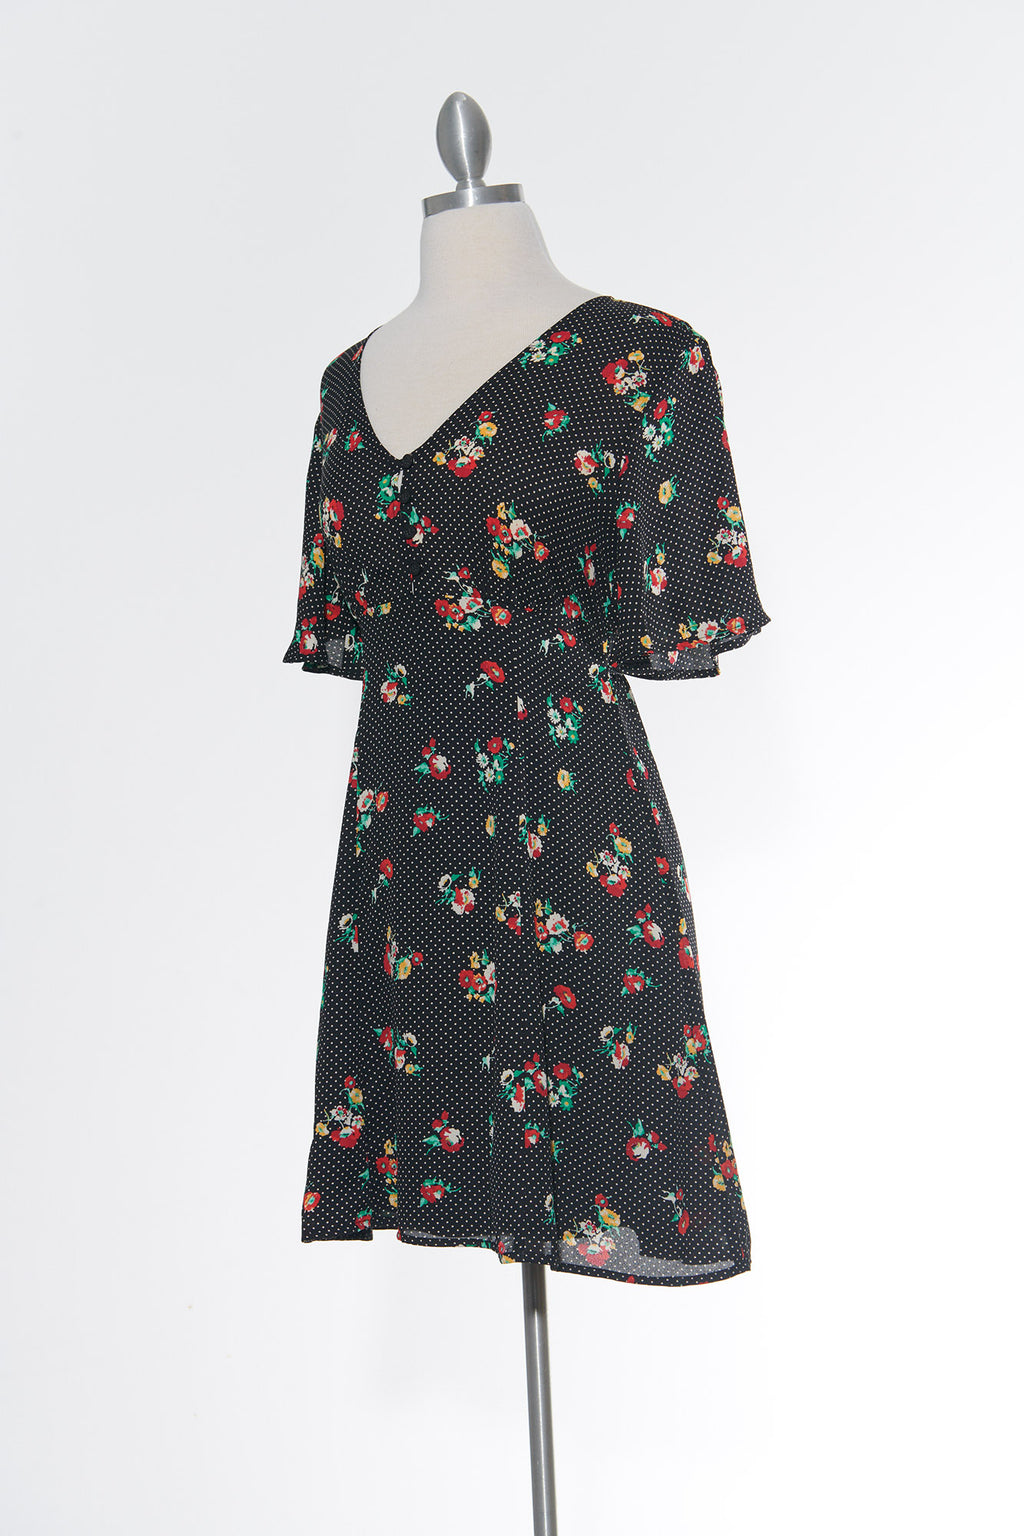 Floral Sweet Heart Black Dress